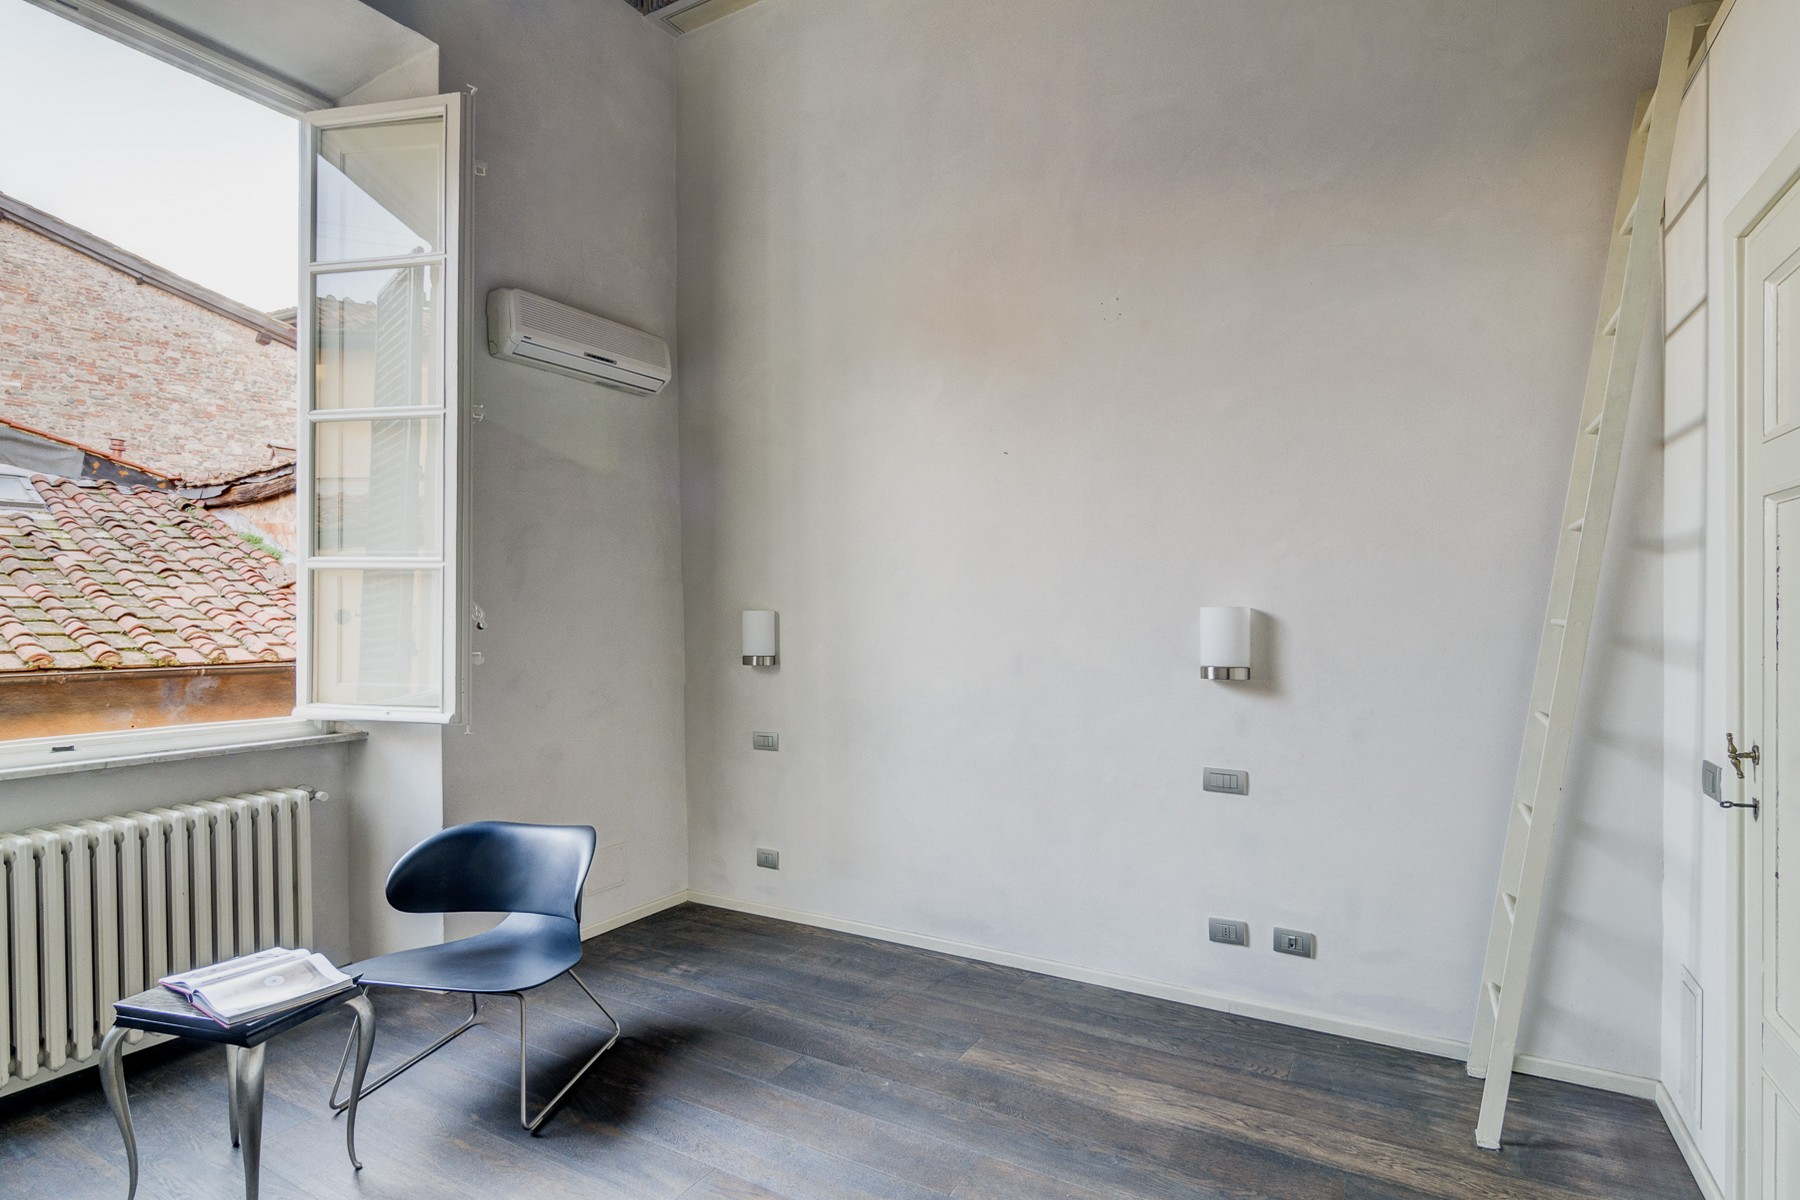 Additional photo for property listing at Exclusive and elegant apartment Via San Giorgio Lucca, Lucca 55100 Italia